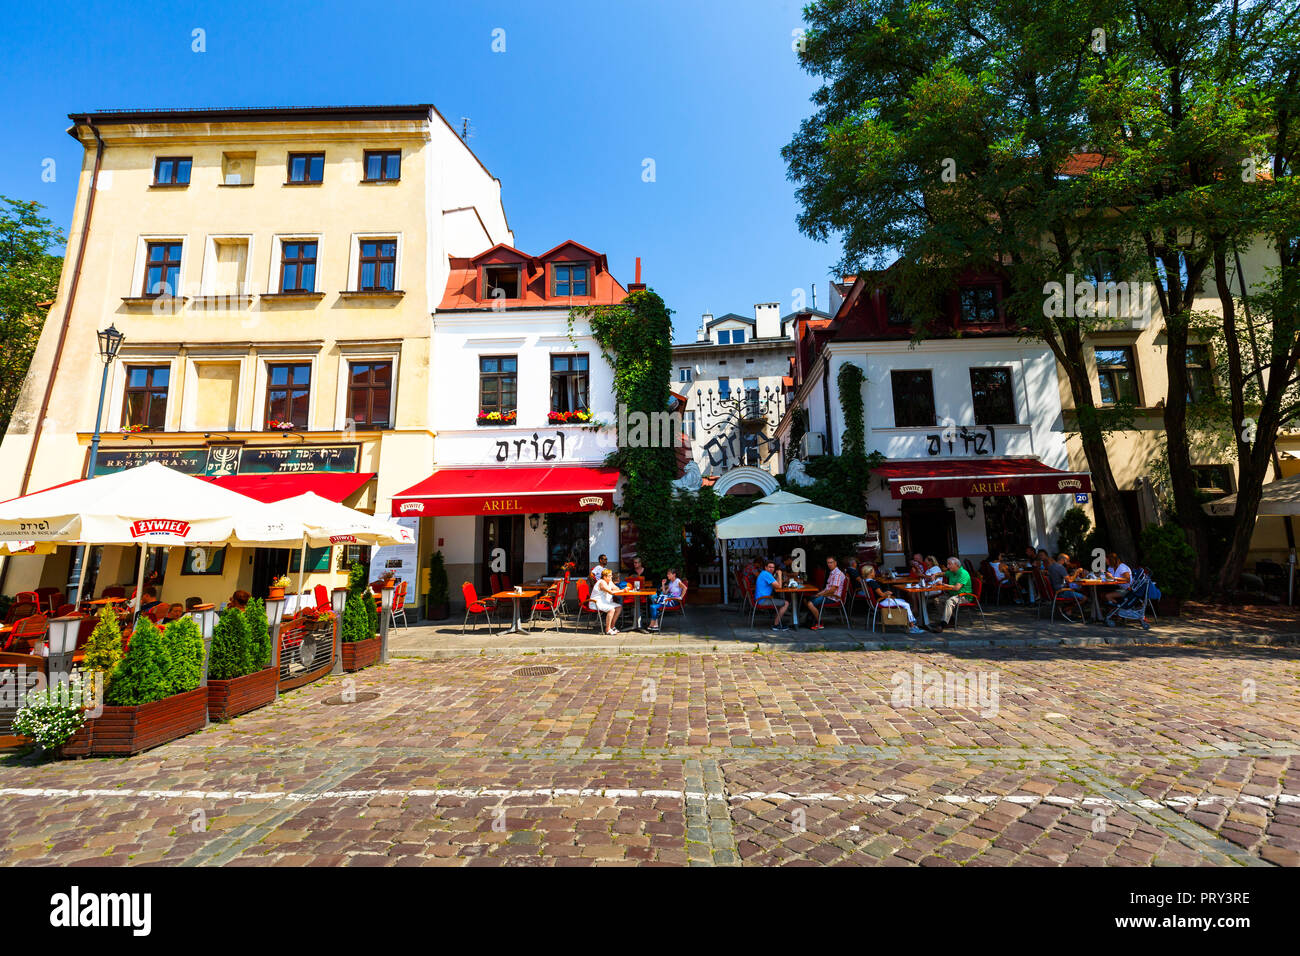 Krakow, Poland - August 23, 2018: Restaurants and coffee shops in centre of Kazimierz district in Krakow, Poland. - Stock Image